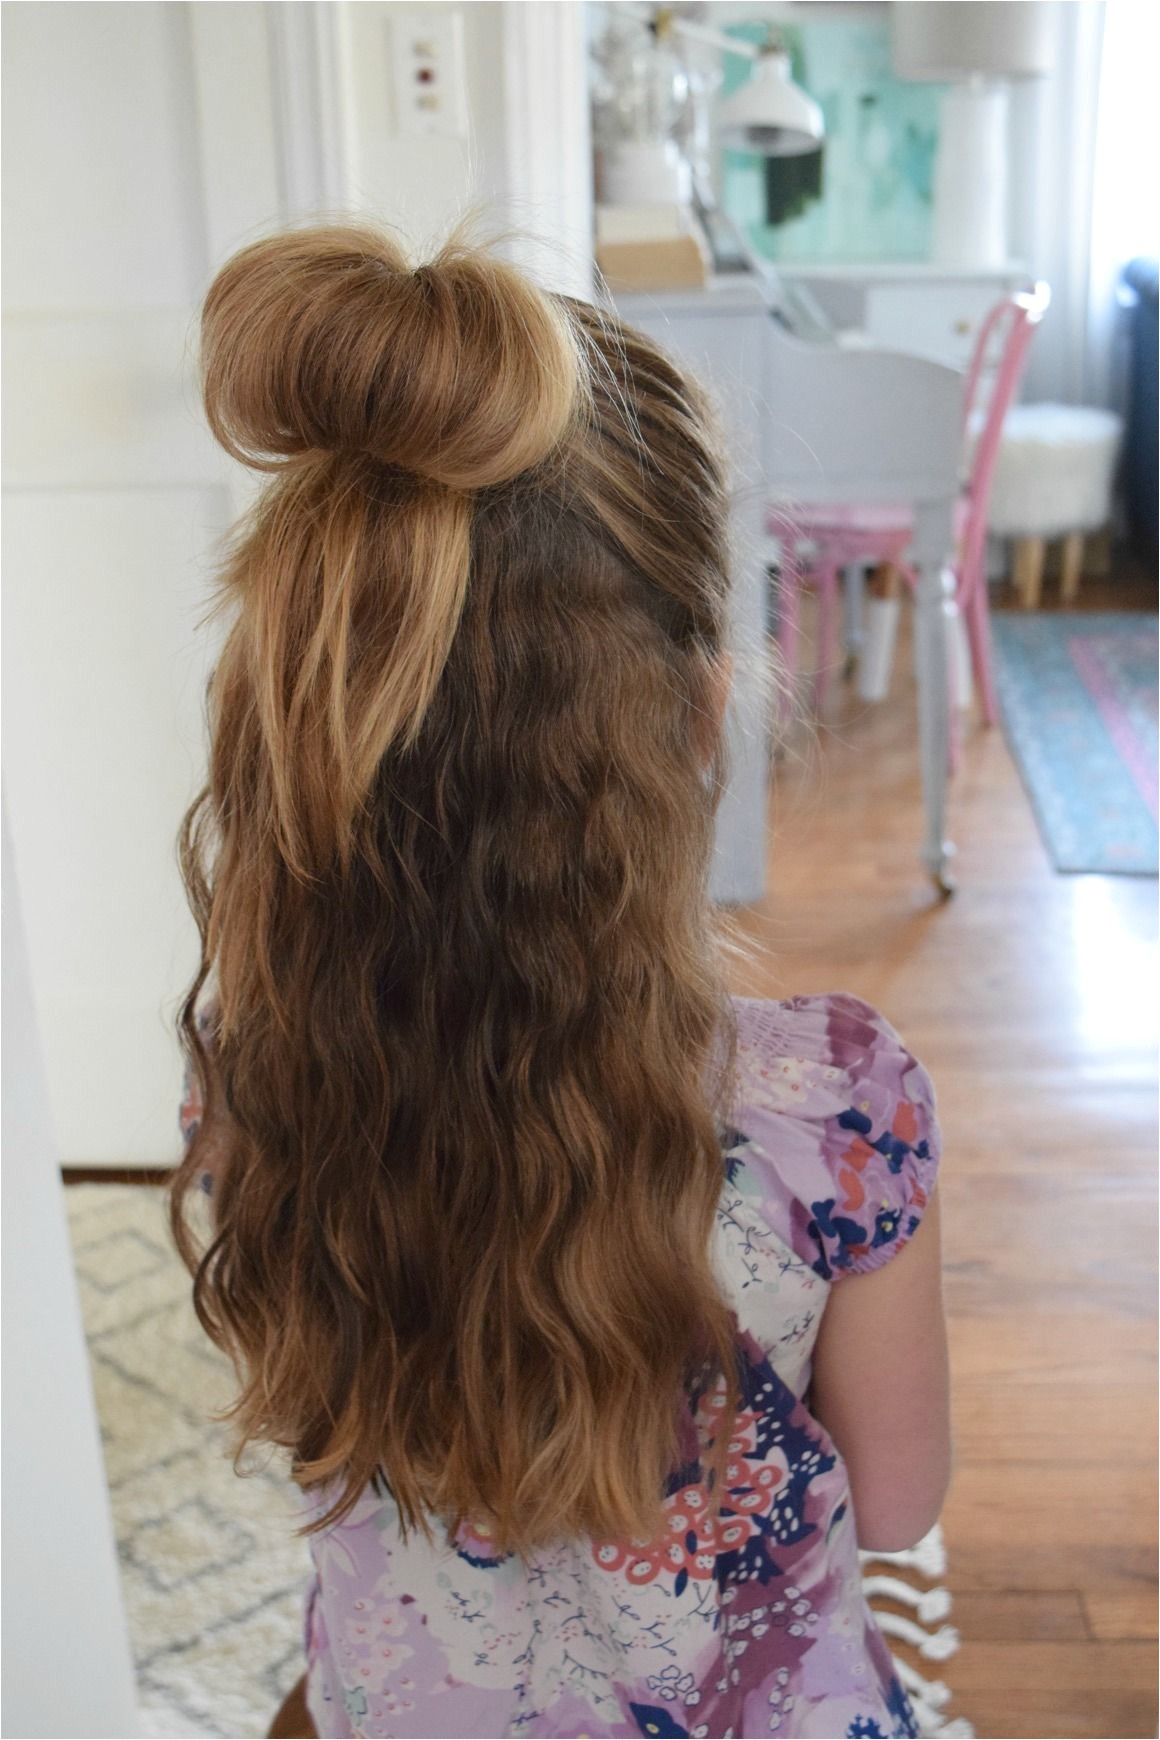 Hairstyles Easy for Little Girls